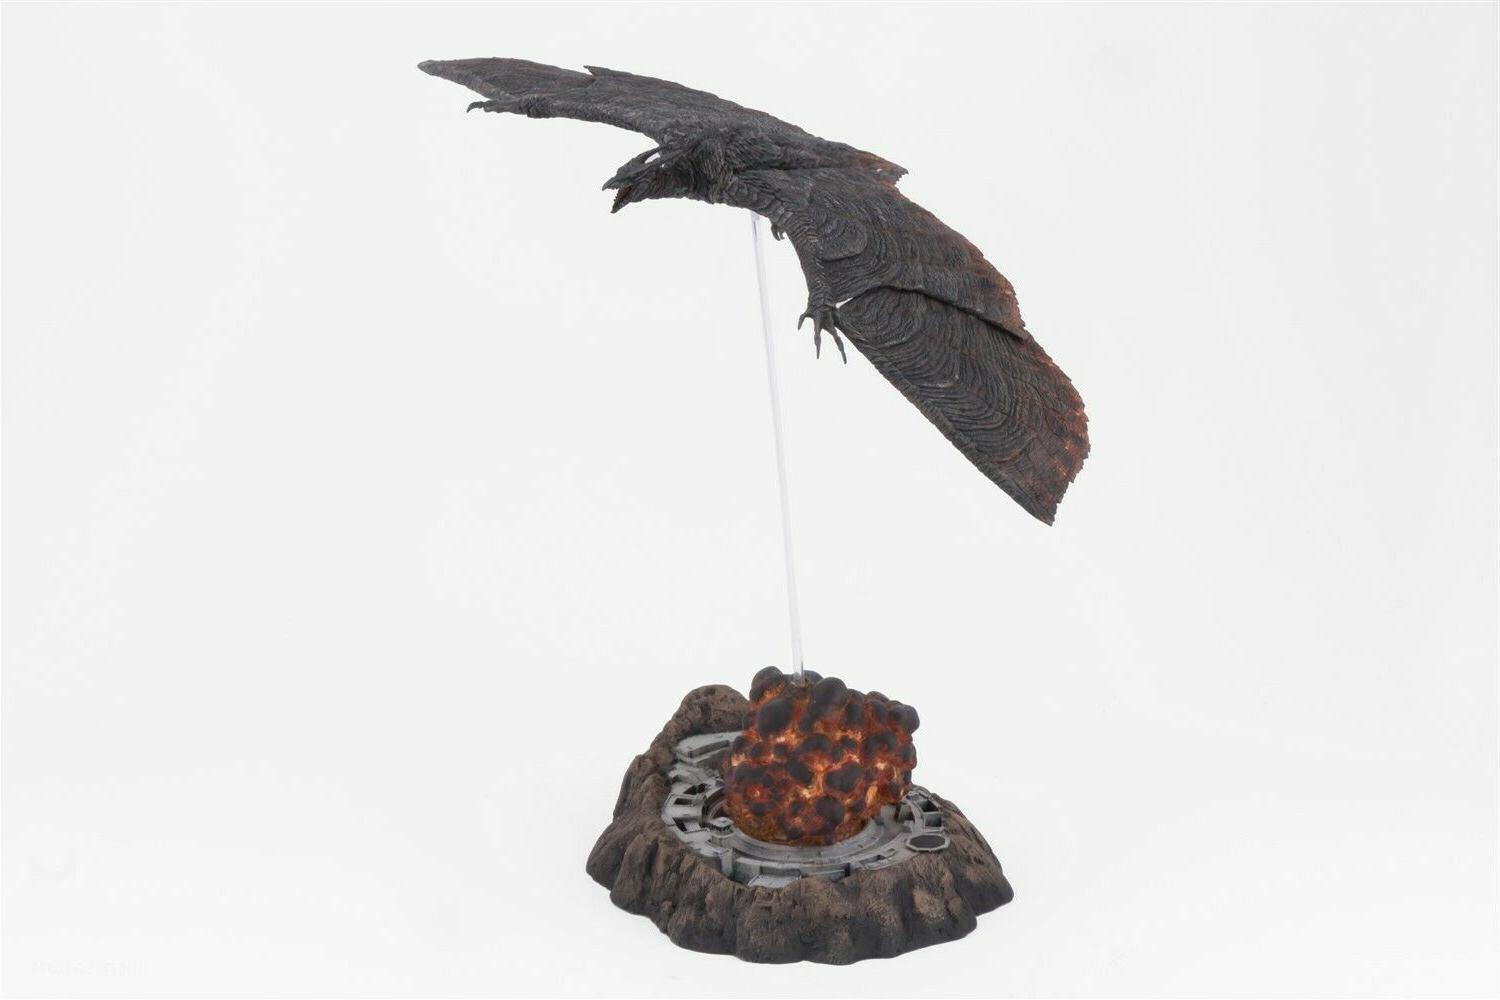 godzilla 13 wing to wing action figure